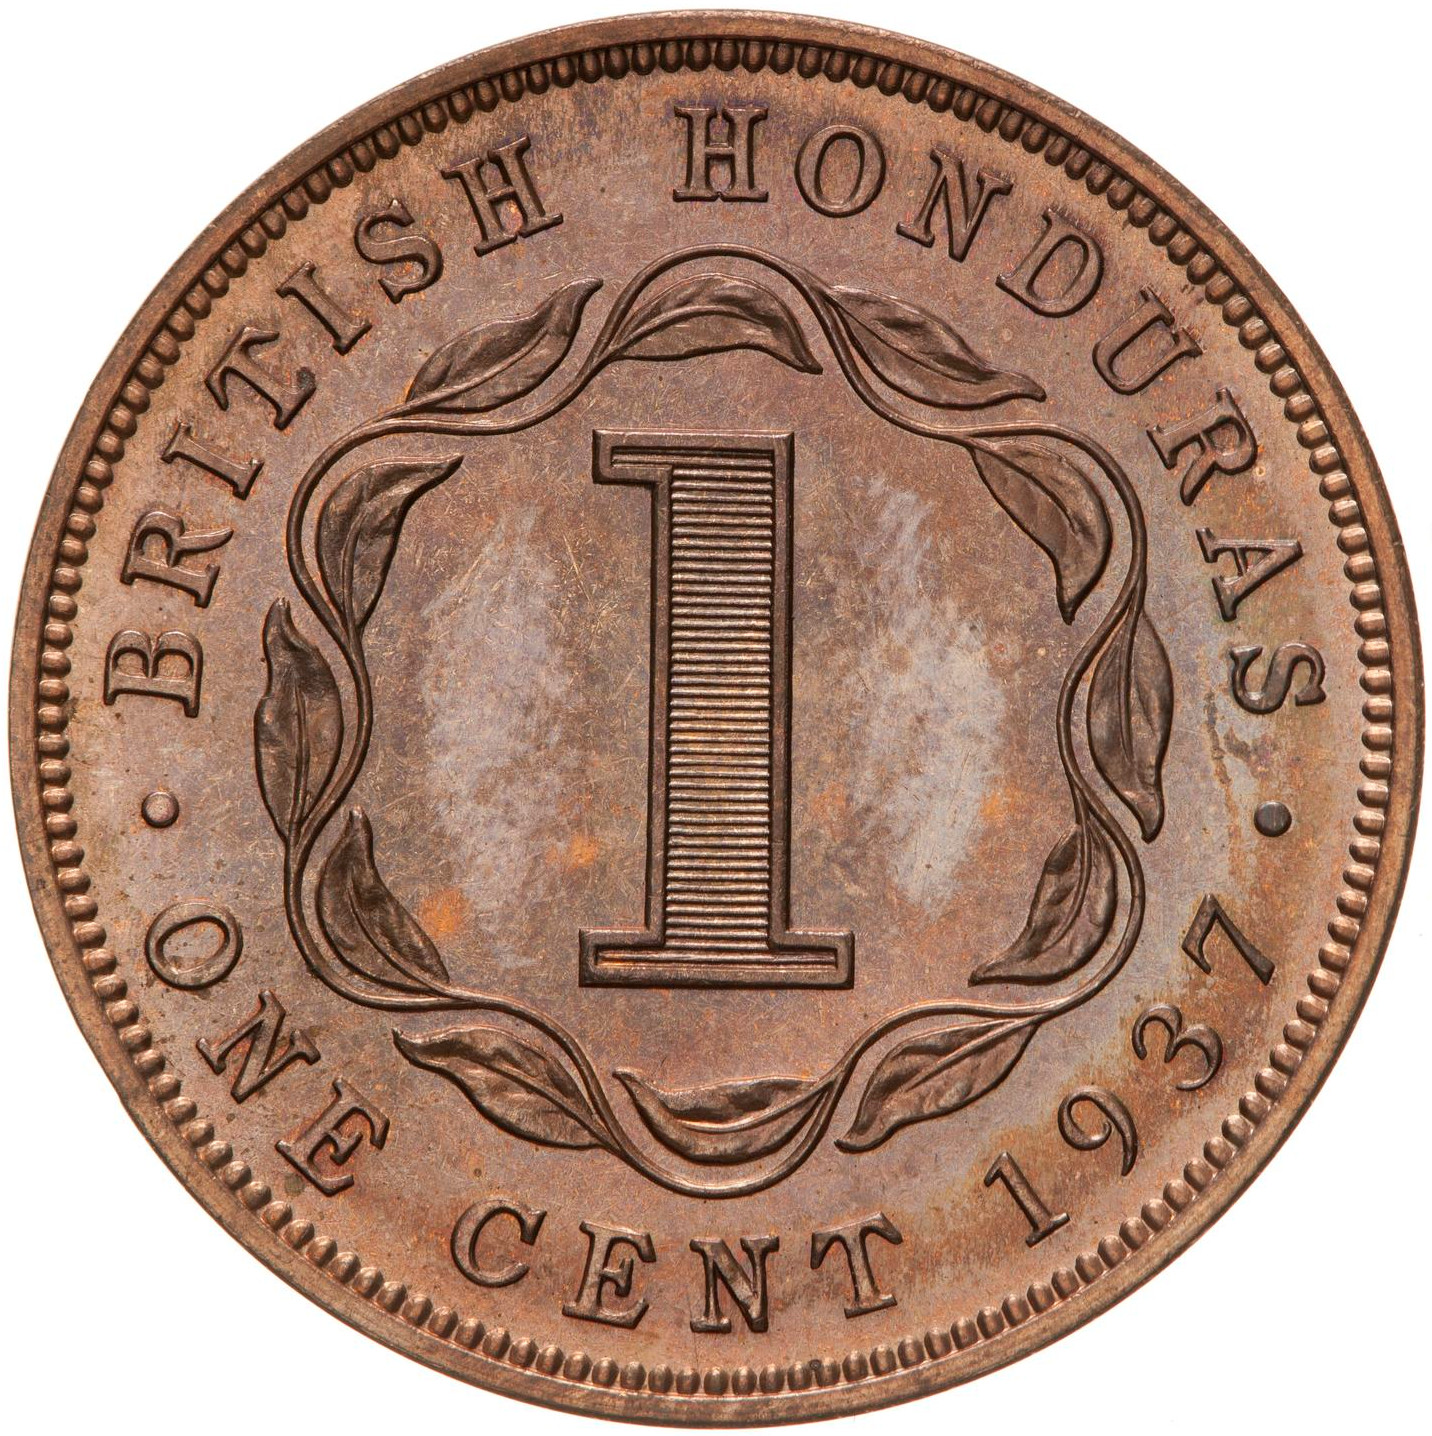 One Cent 1937: Photo Proof Coin - 1 Cent, British Honduras (Belize), 1937